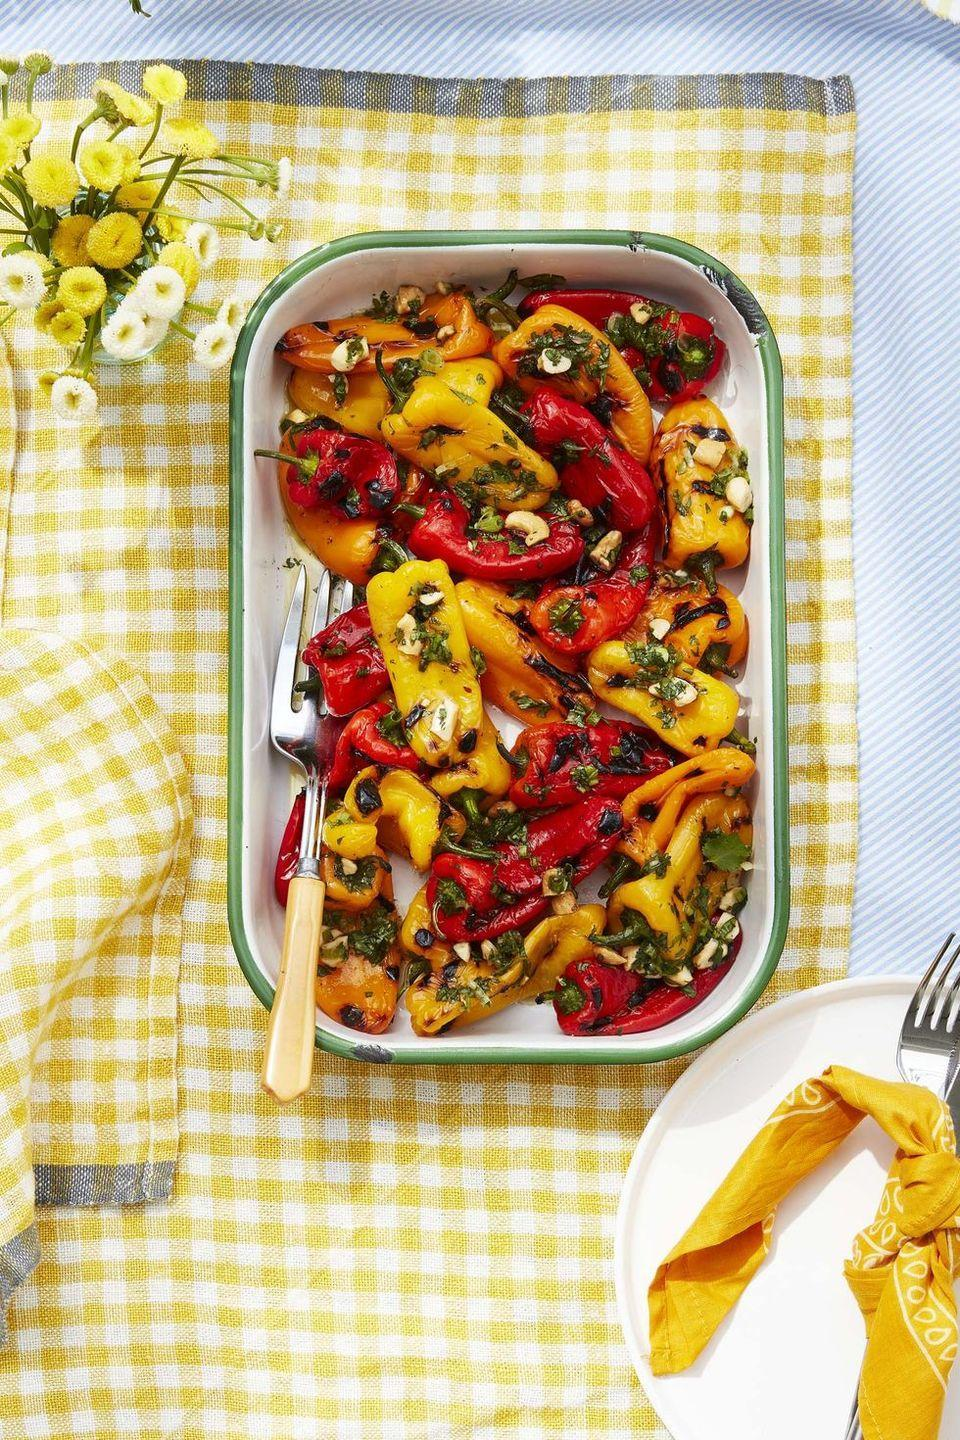 """<p>Grilled baby peppers get topped with a savory and tangy cilantro cashew sauce. </p><p><strong><a href=""""https://www.countryliving.com/food-drinks/a32353796/charred-baby-peppers-with-lime-and-cashew-vinaigrette/"""" rel=""""nofollow noopener"""" target=""""_blank"""" data-ylk=""""slk:Get the recipe"""" class=""""link rapid-noclick-resp"""">Get the recipe</a>.</strong></p>"""